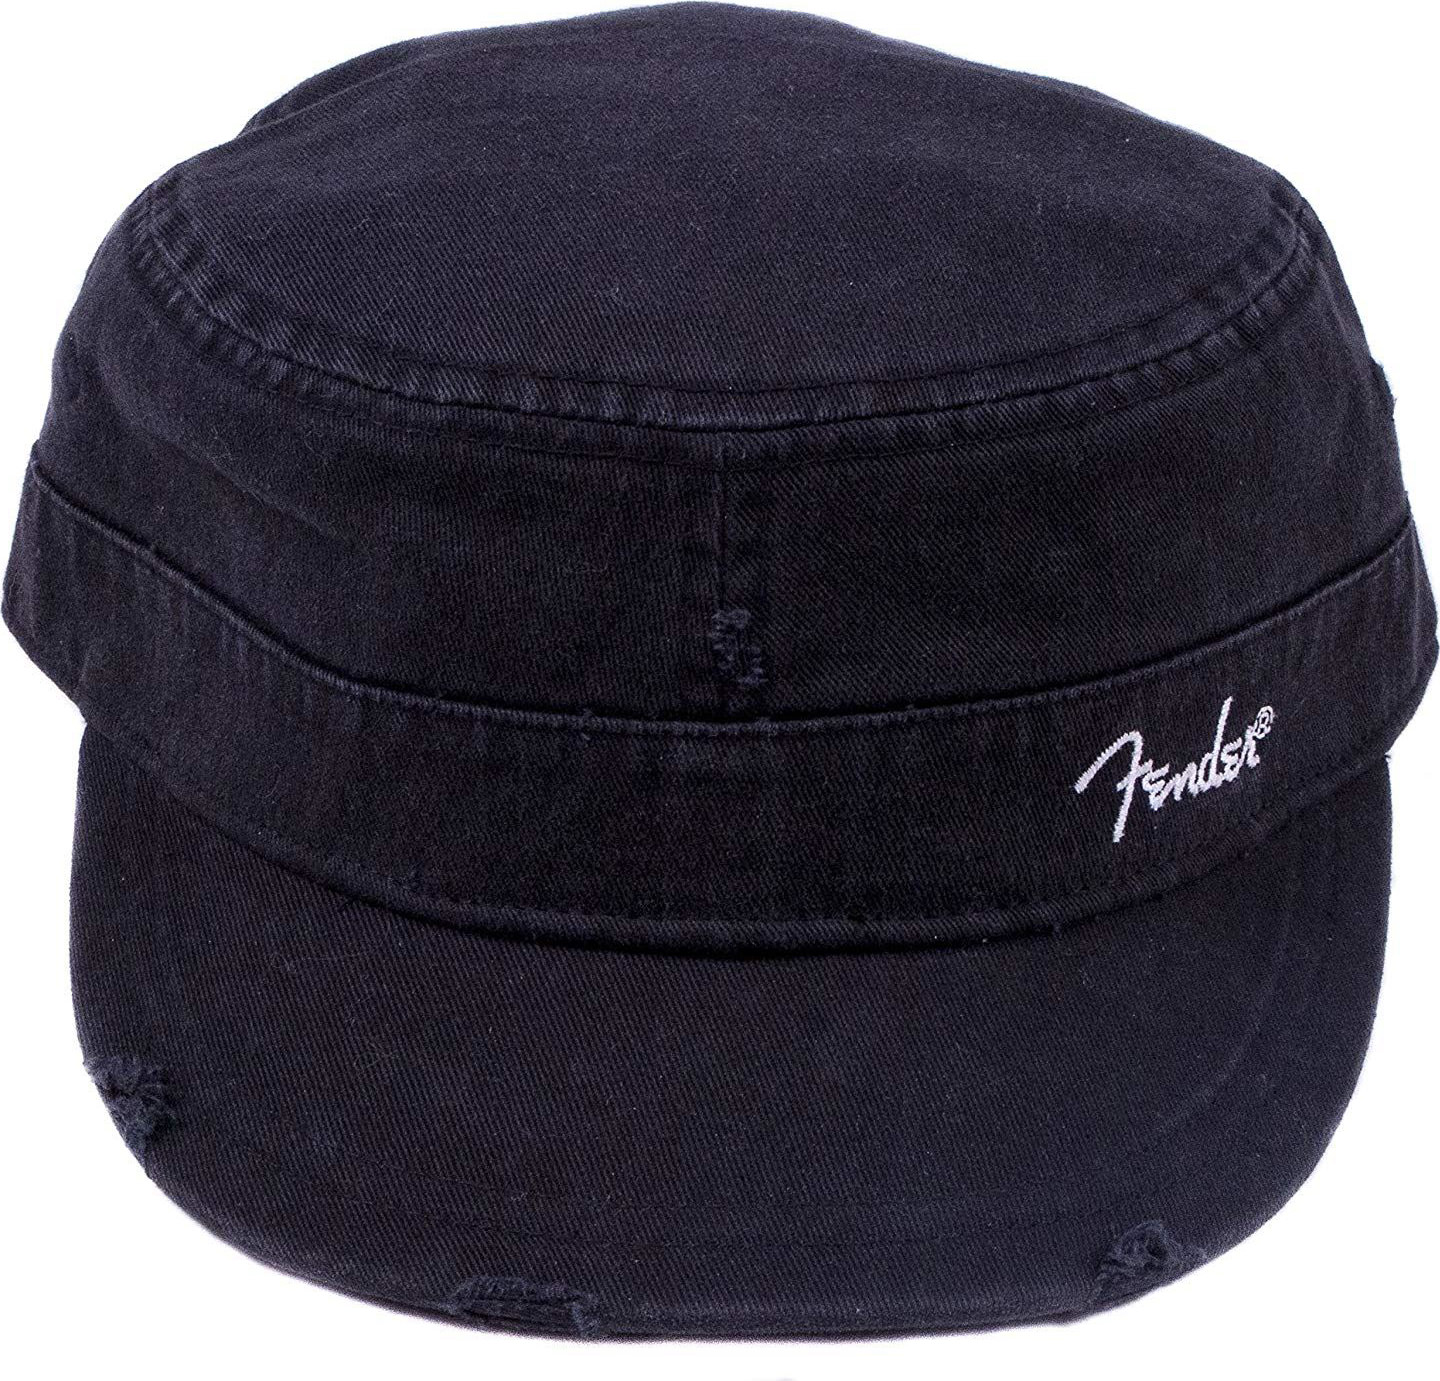 FENDER MILITARY CAP BLACK, L/XL